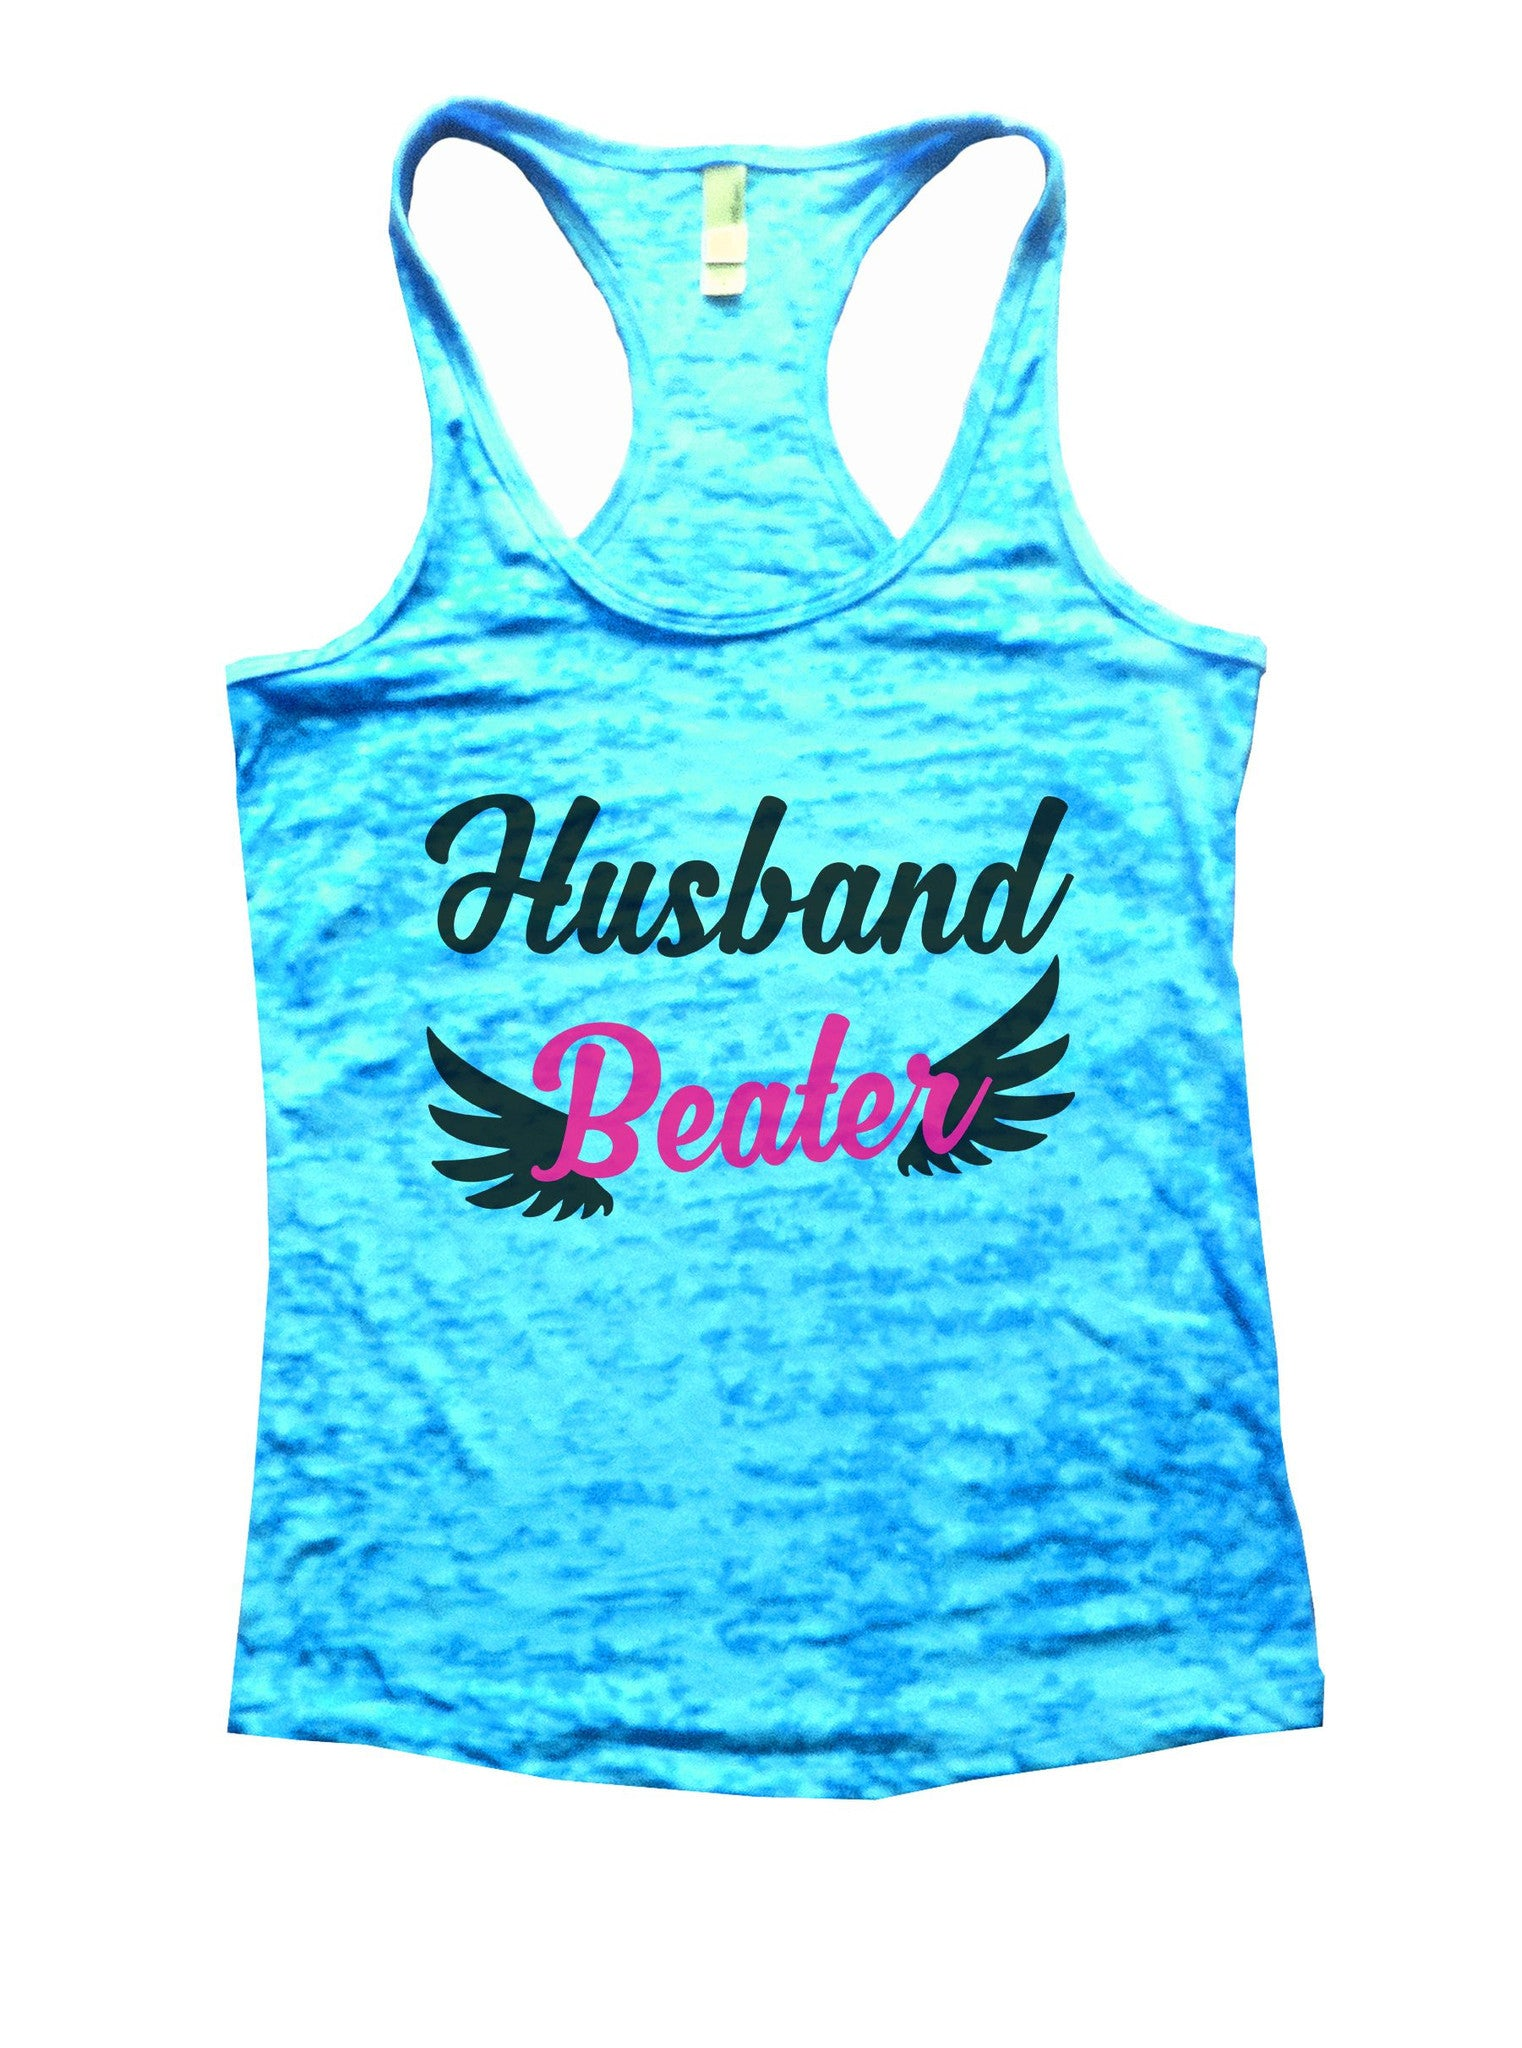 Husband Beater Burnout Tank Top By BurnoutTankTops.com - 1067 - Funny Shirts Tank Tops Burnouts and Triblends  - 4